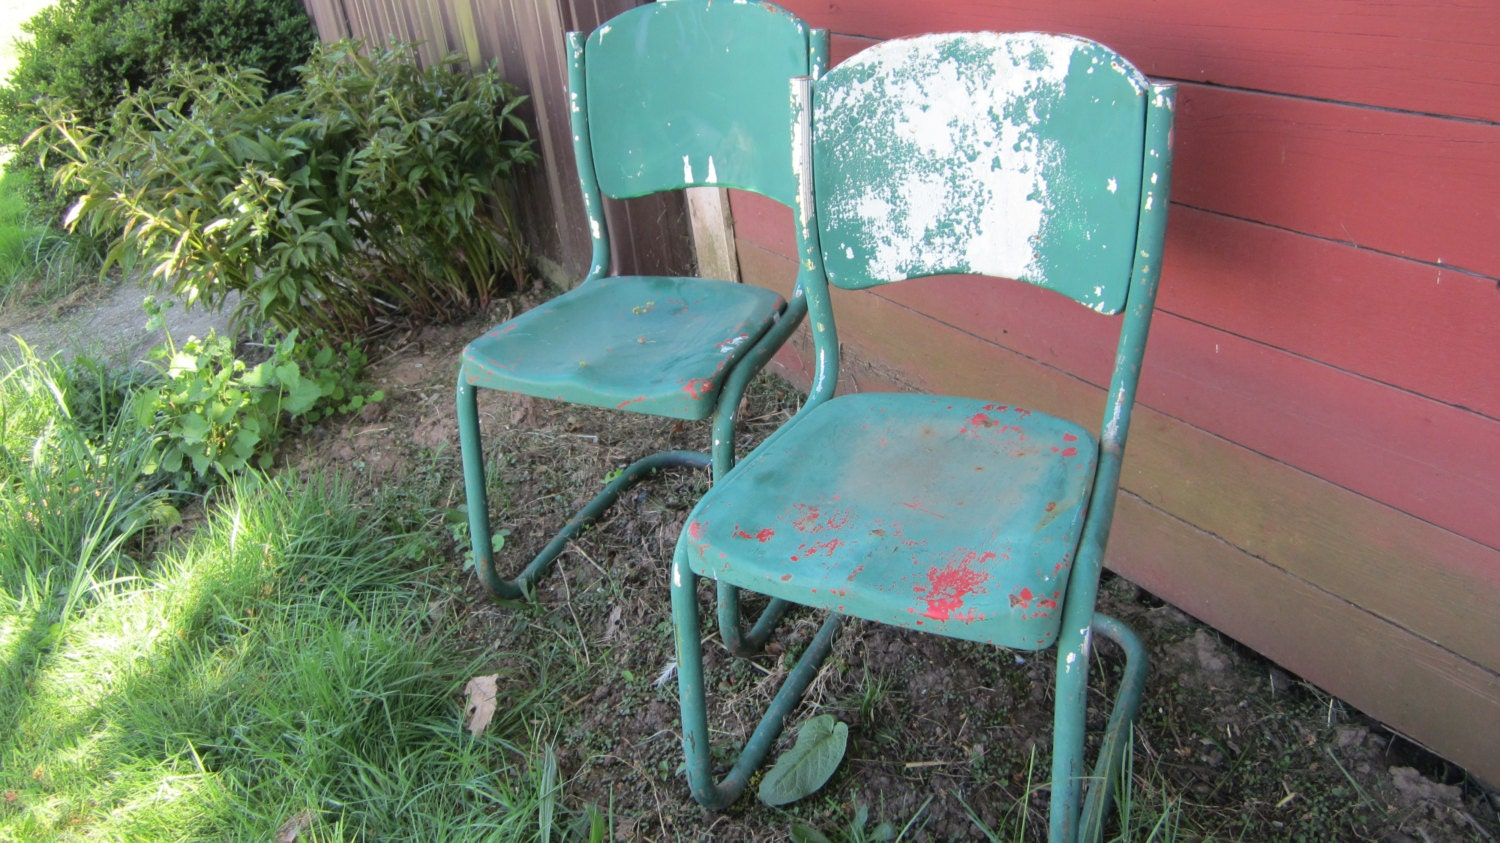 Vintage Metal Lawn Chairs >> Items similar to 2 Vintage Old Time Metal Chairs Lawn ...